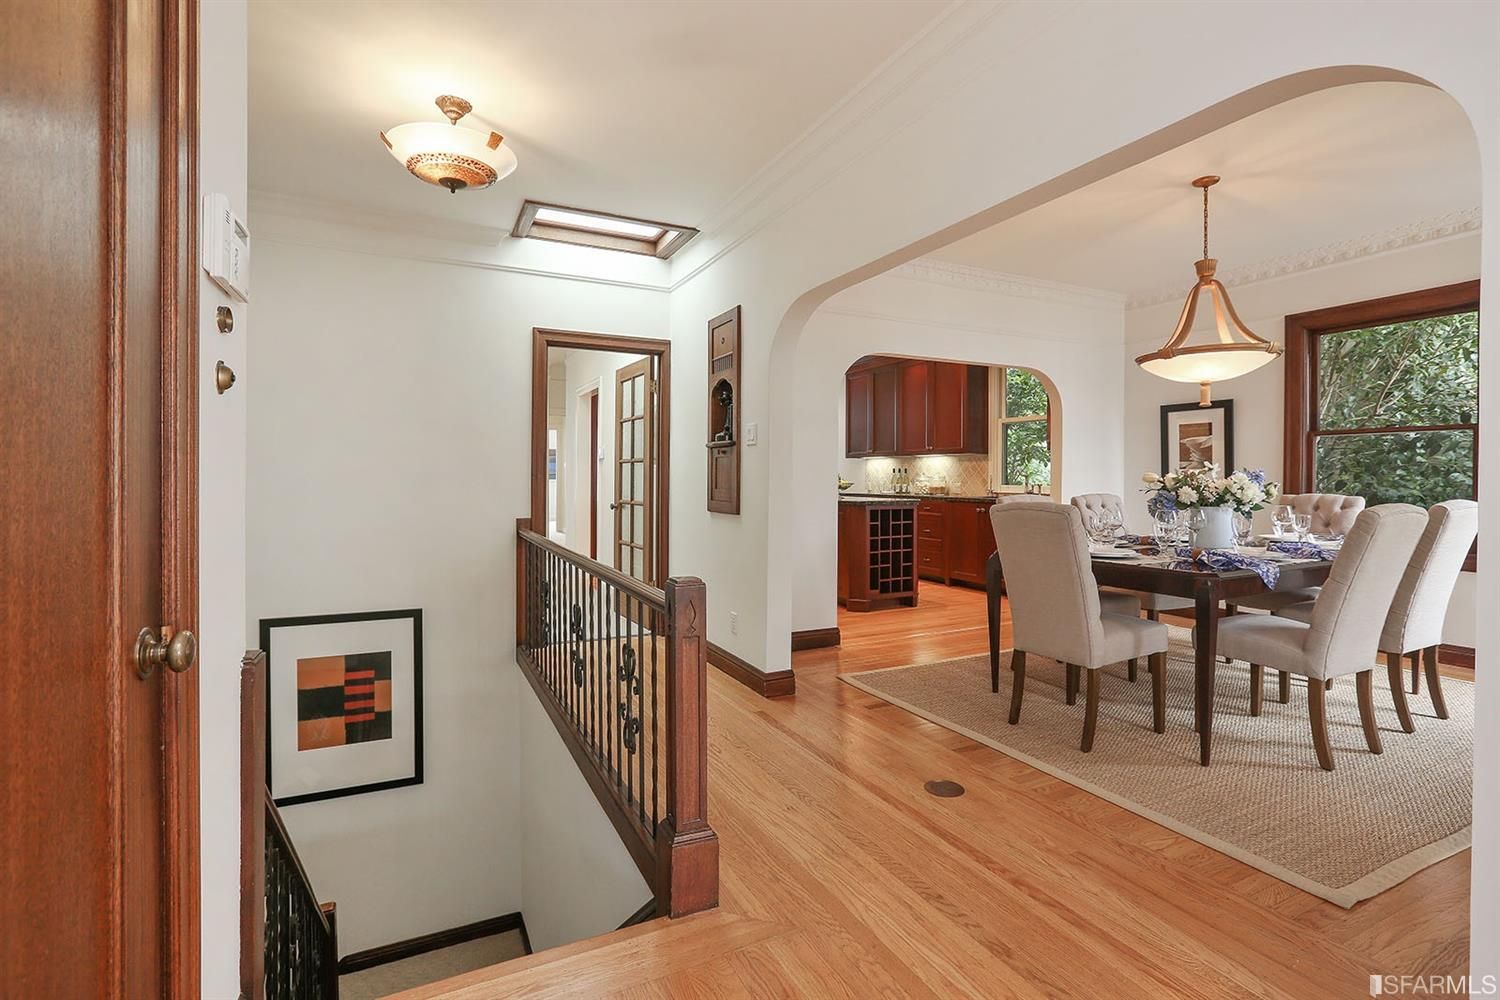 Additional photo for property listing at 2816 Baker Street  SAN FRANCISCO, CALIFORNIA 94123